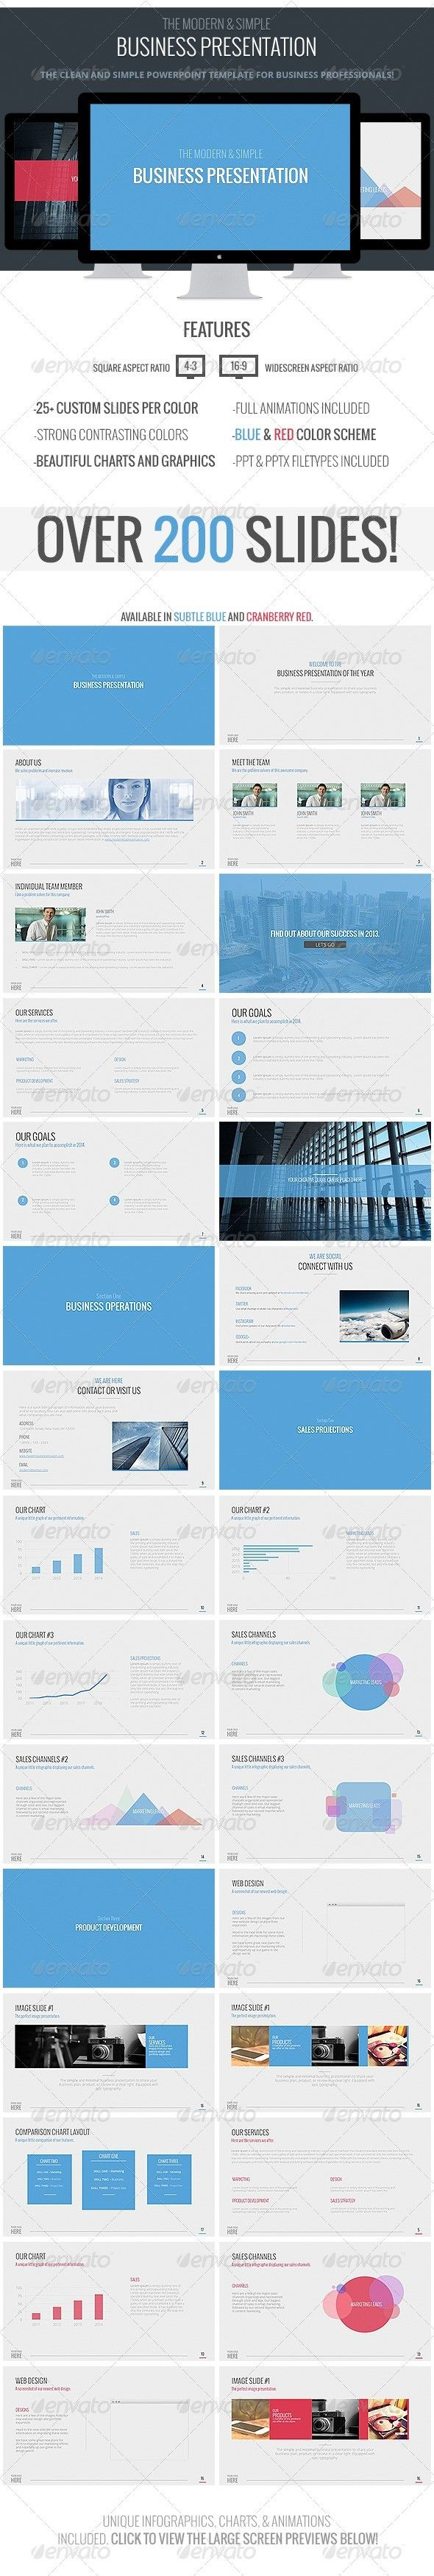 Analysis Blue Business Business Presentation Business